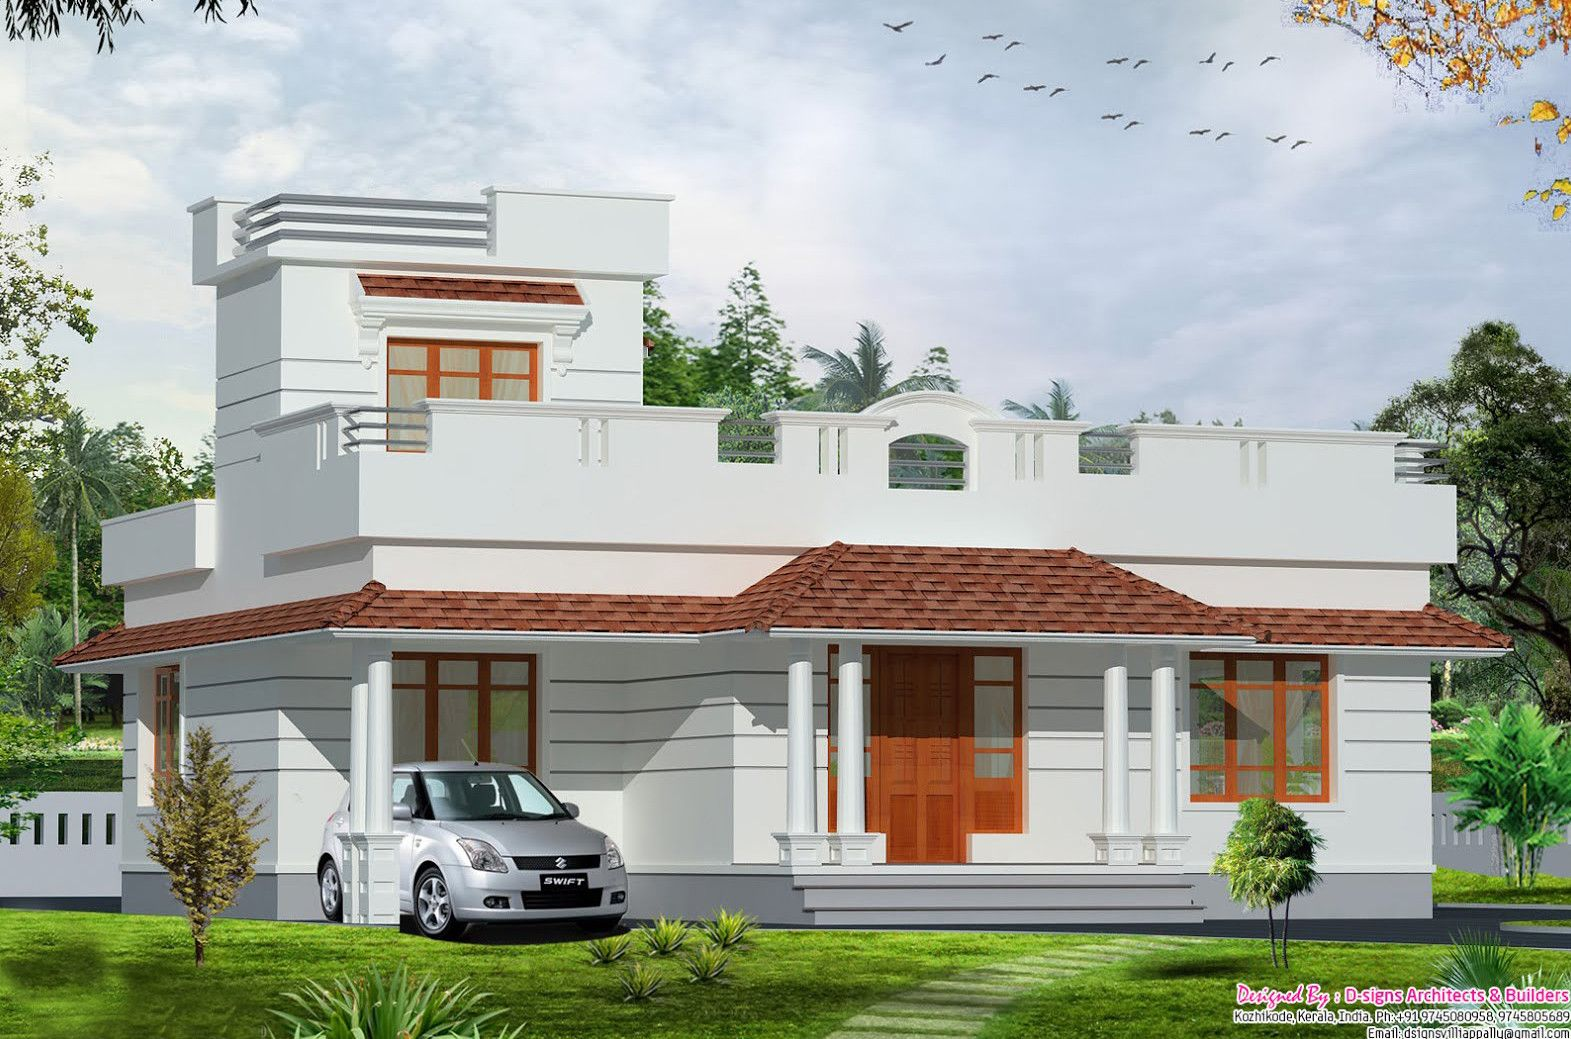 Small Simple But Beautiful House Roof Deck Decoratorist 130854 In 2020 House Design Luxury House Plans Building Plans House